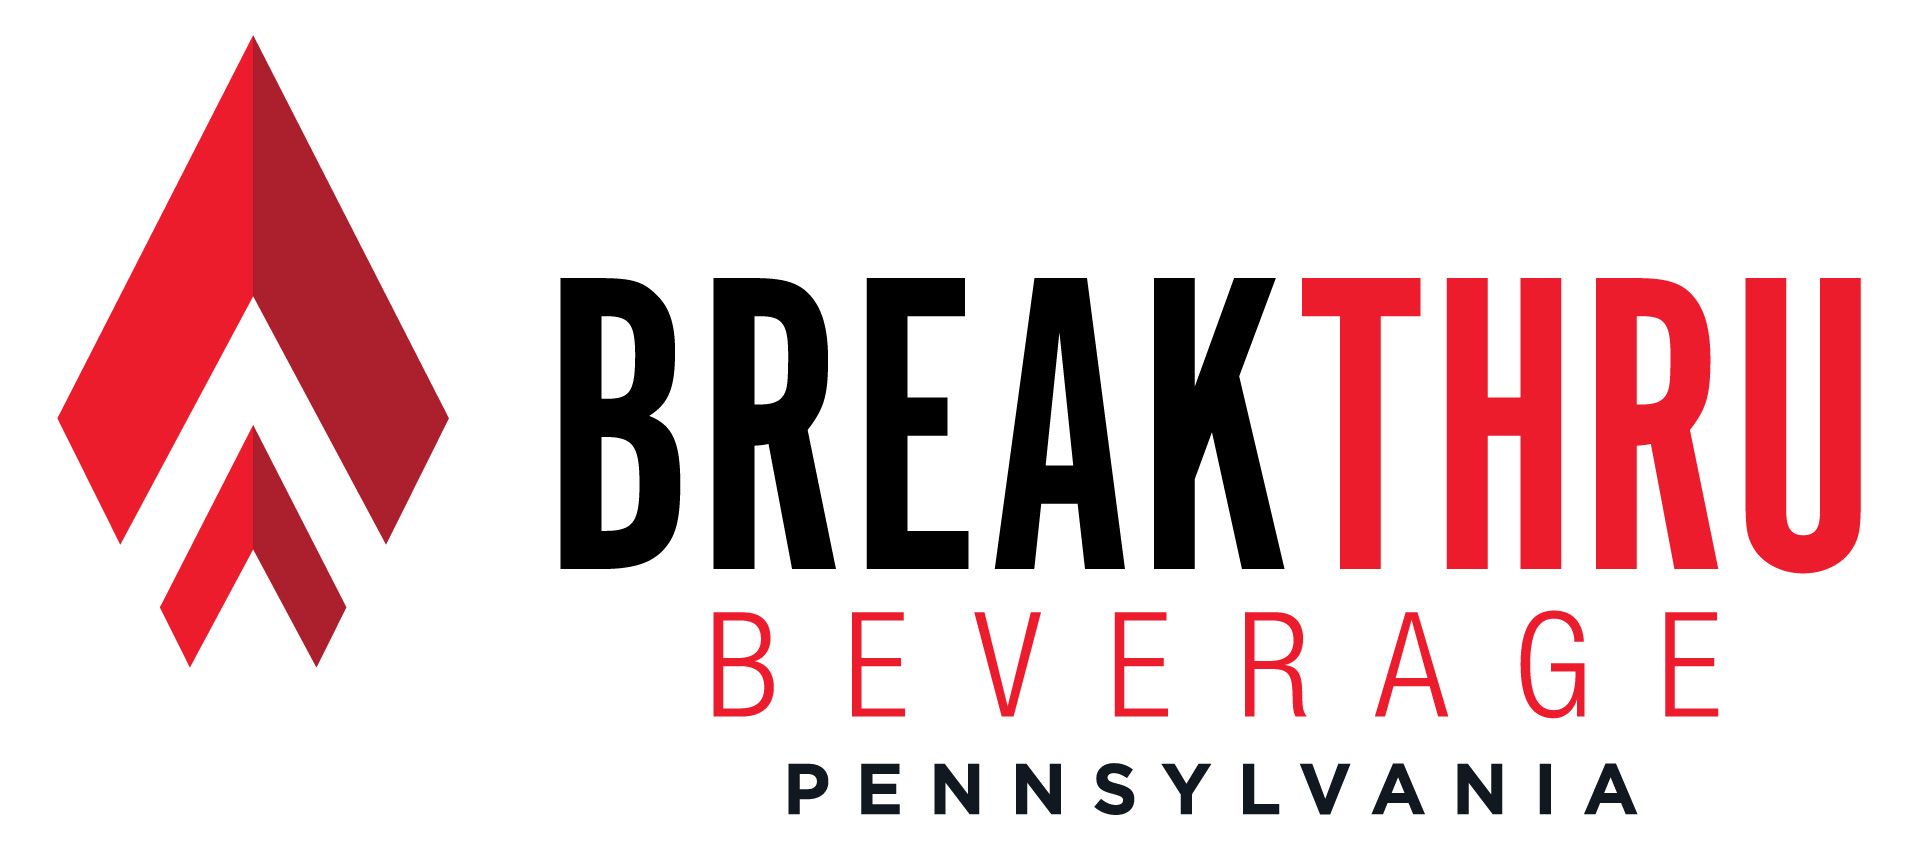 Breakthru Beverage PA logo